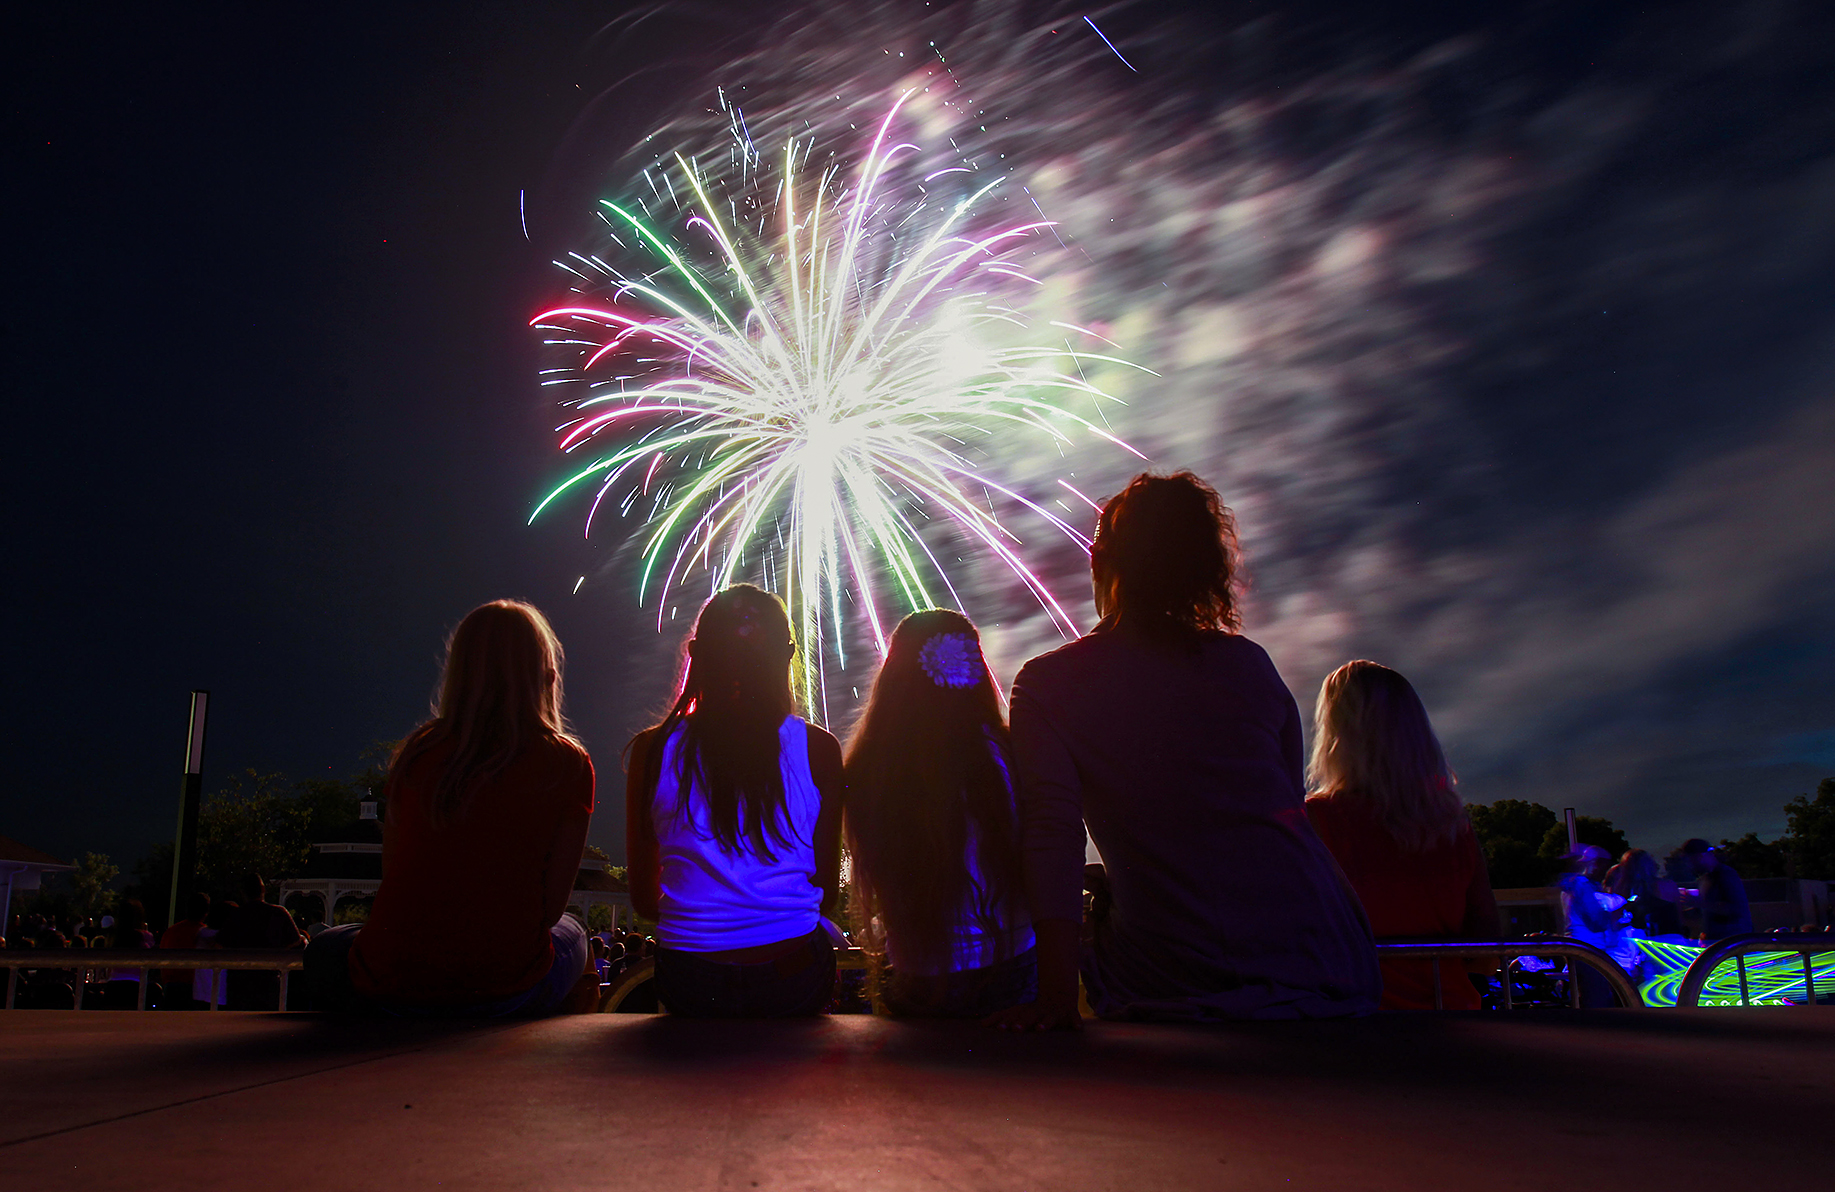 Still more fireworks on tap - The Blade